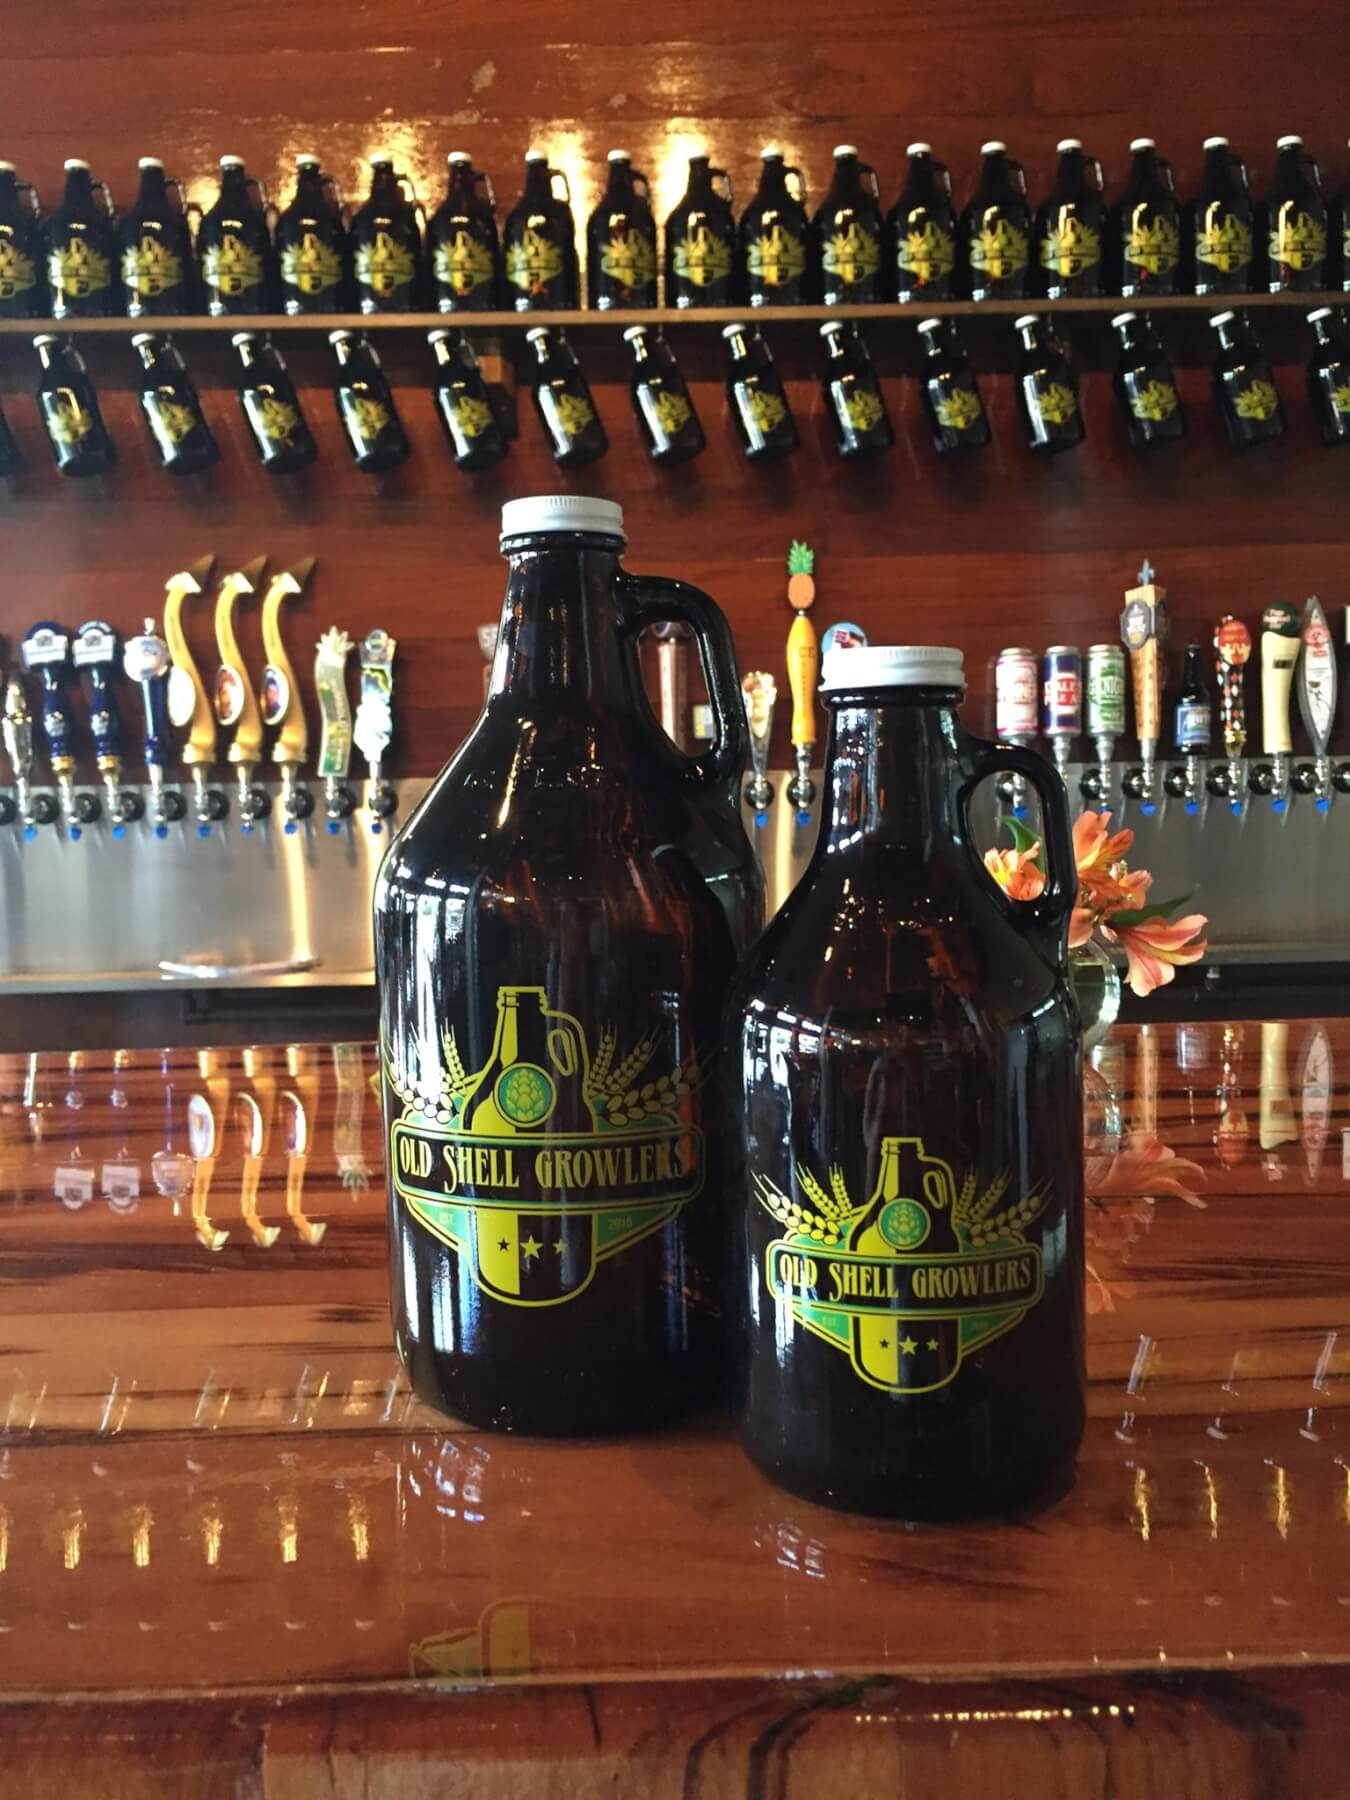 Old Shell Growlers an 'oasis in the desert'